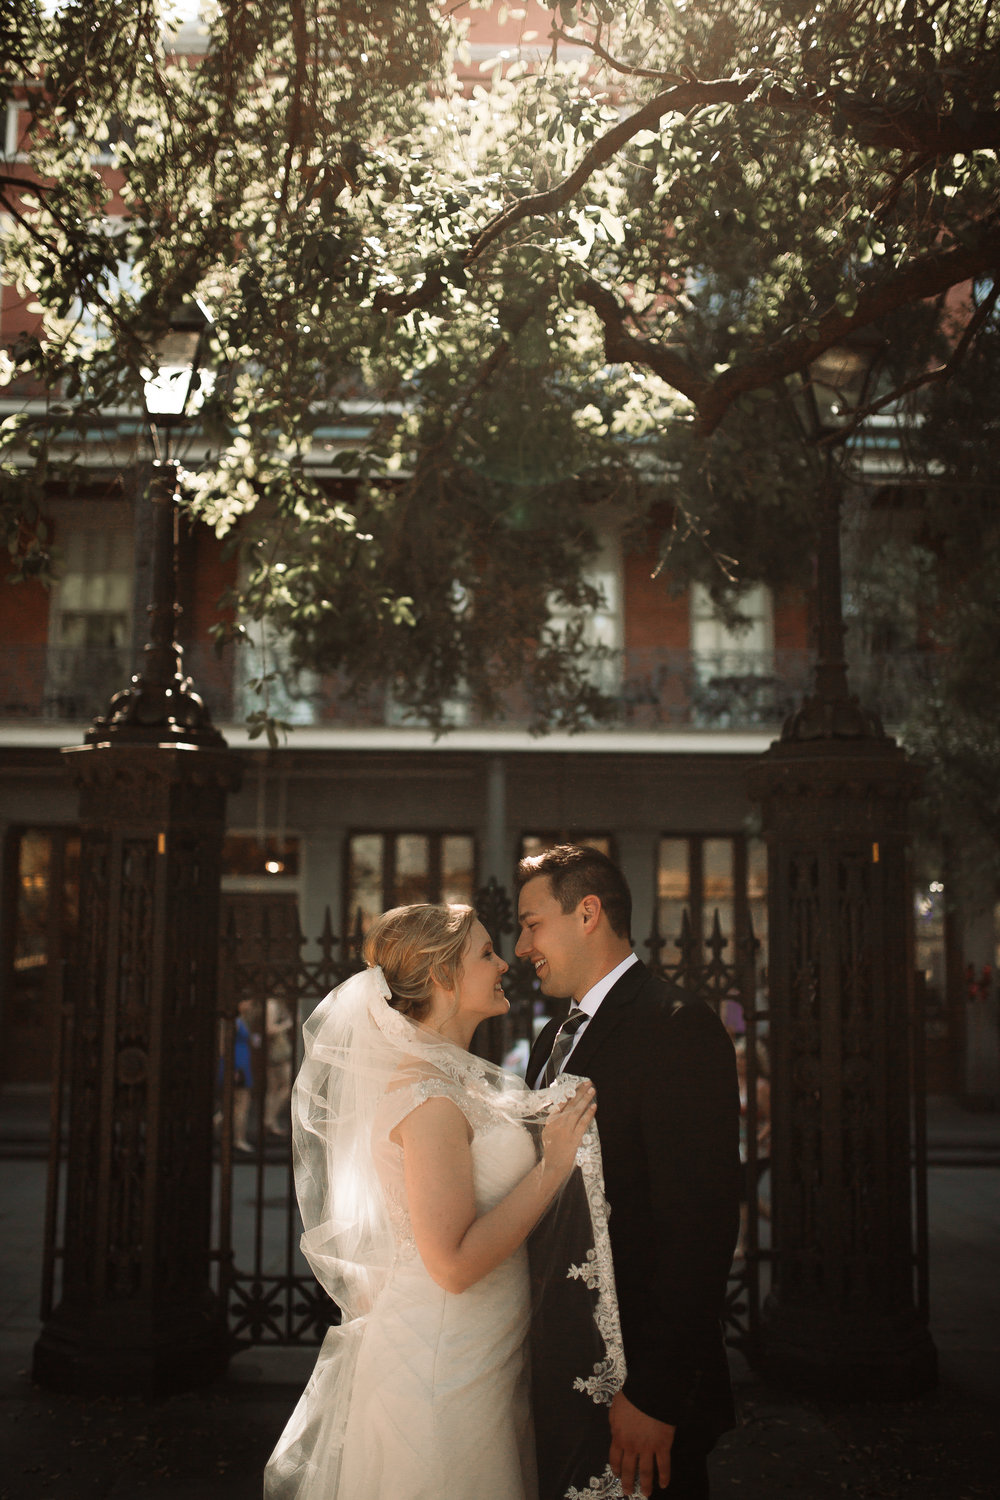 cassie-cook-photography-new-orleans-wedding-photographer-new-orleans-wedding-venue-the-pharmacy-museum